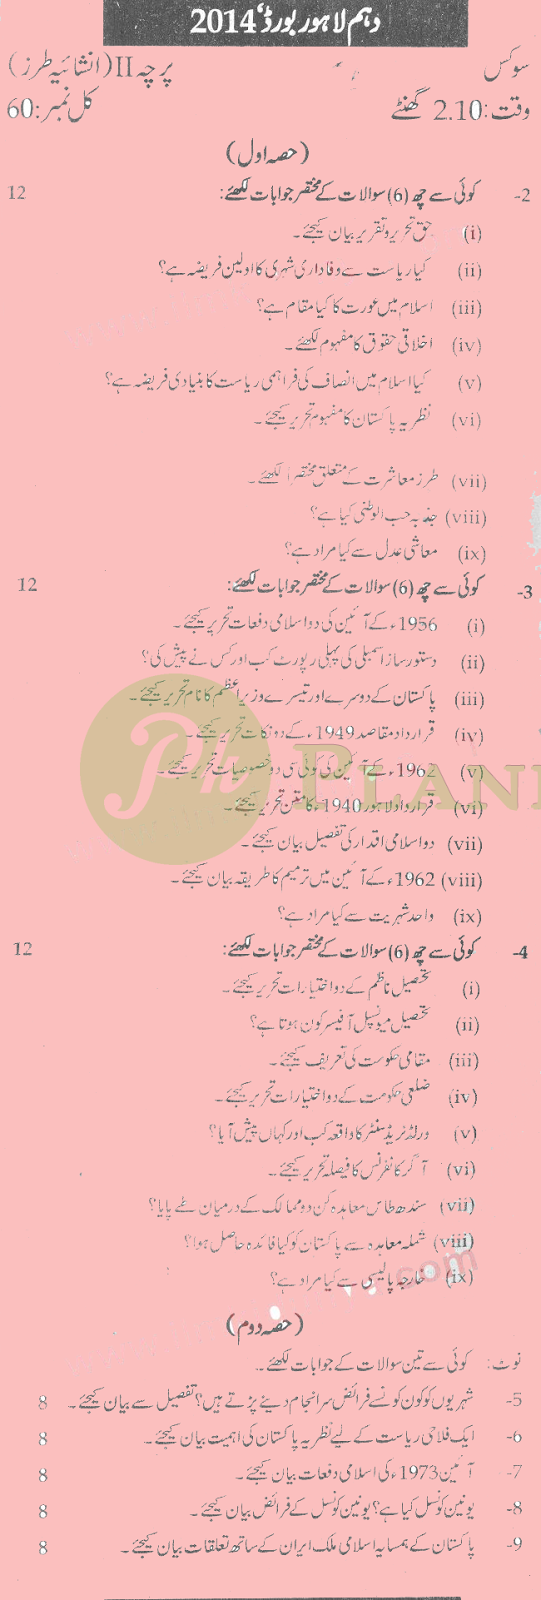 Past Papers of 10th Class Lahore Board Civics 2014